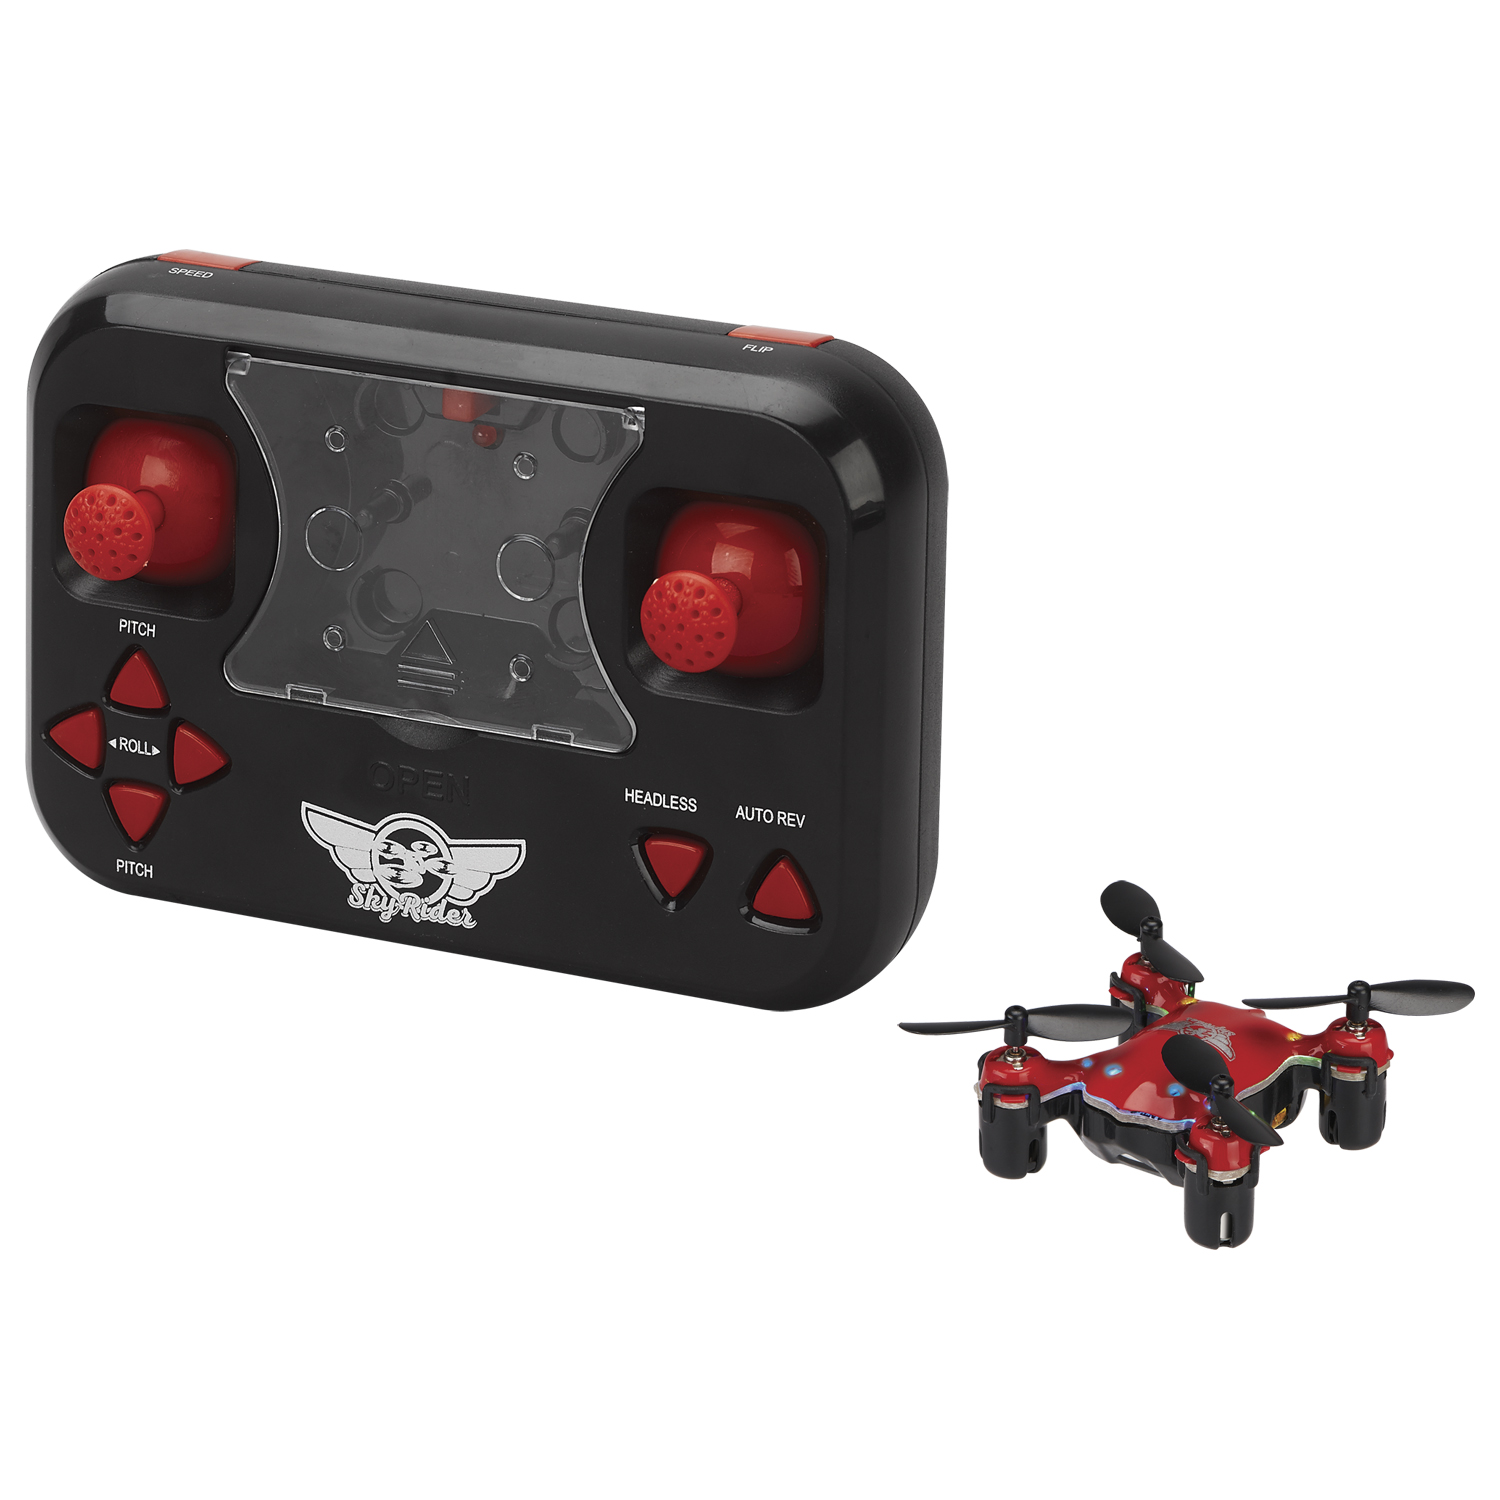 Sky Rider Micro Quadcopter Drone, DR107, Multiple Colors